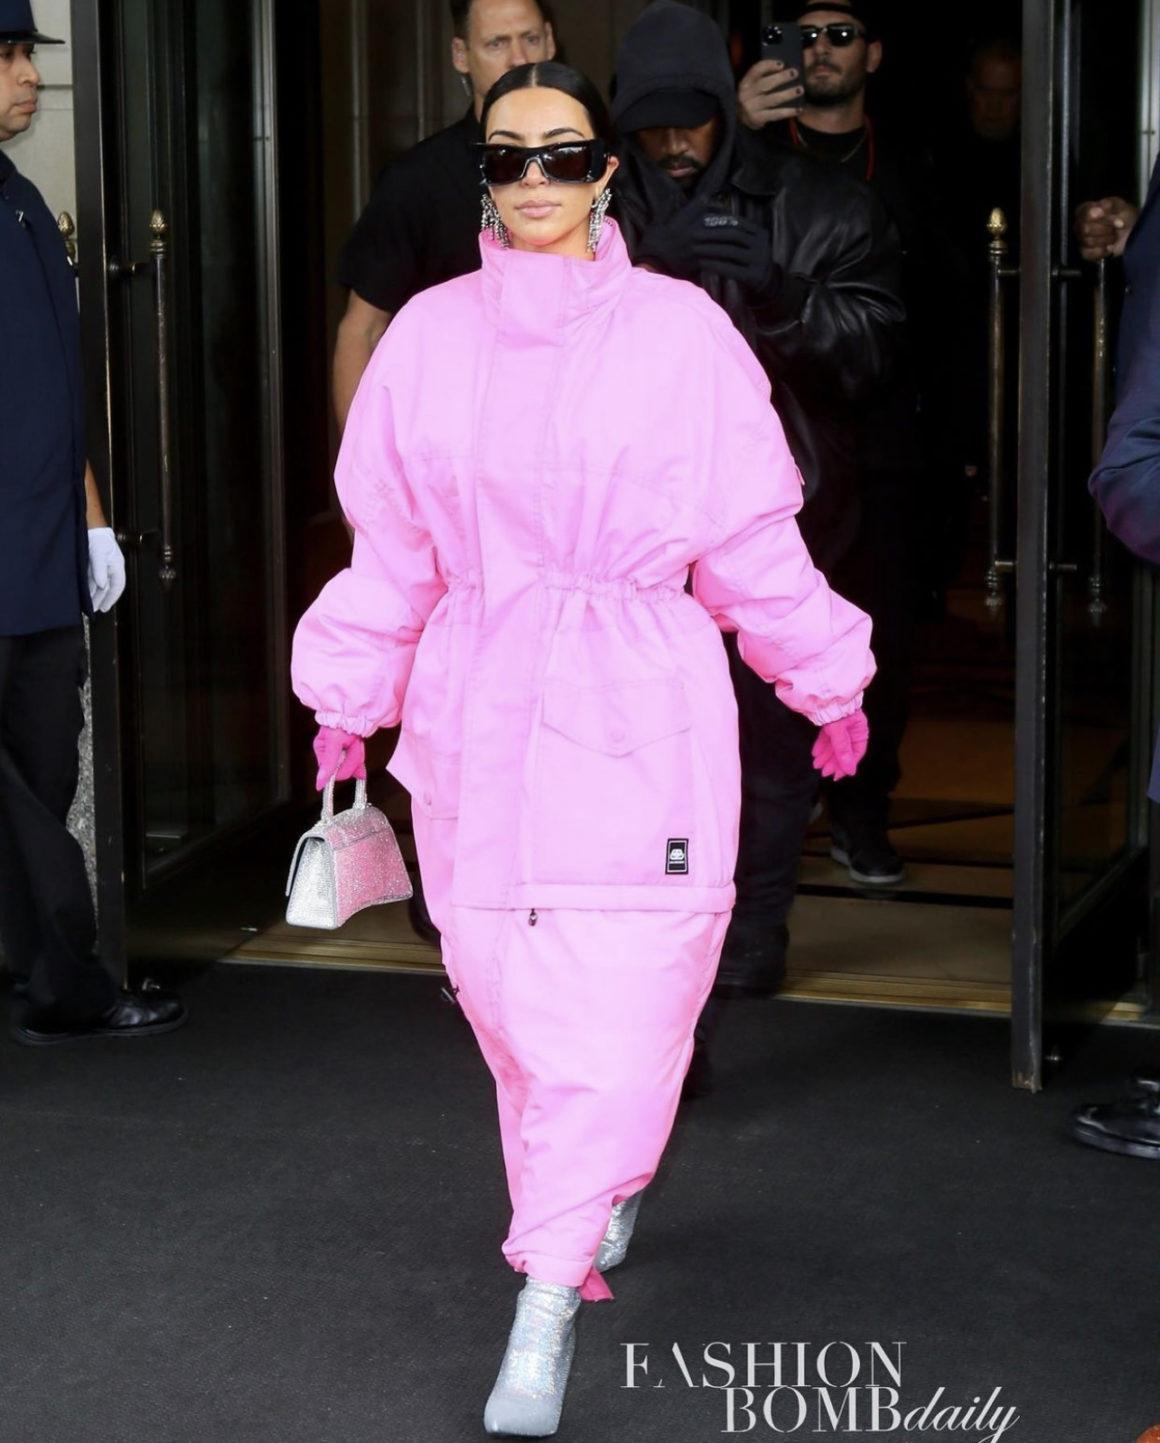 Kim Kardashian Heads Out With Kanye West in NYC Wearing New Pink Look Including Balenciaga Resort 2020 Maxi Puffer Coat